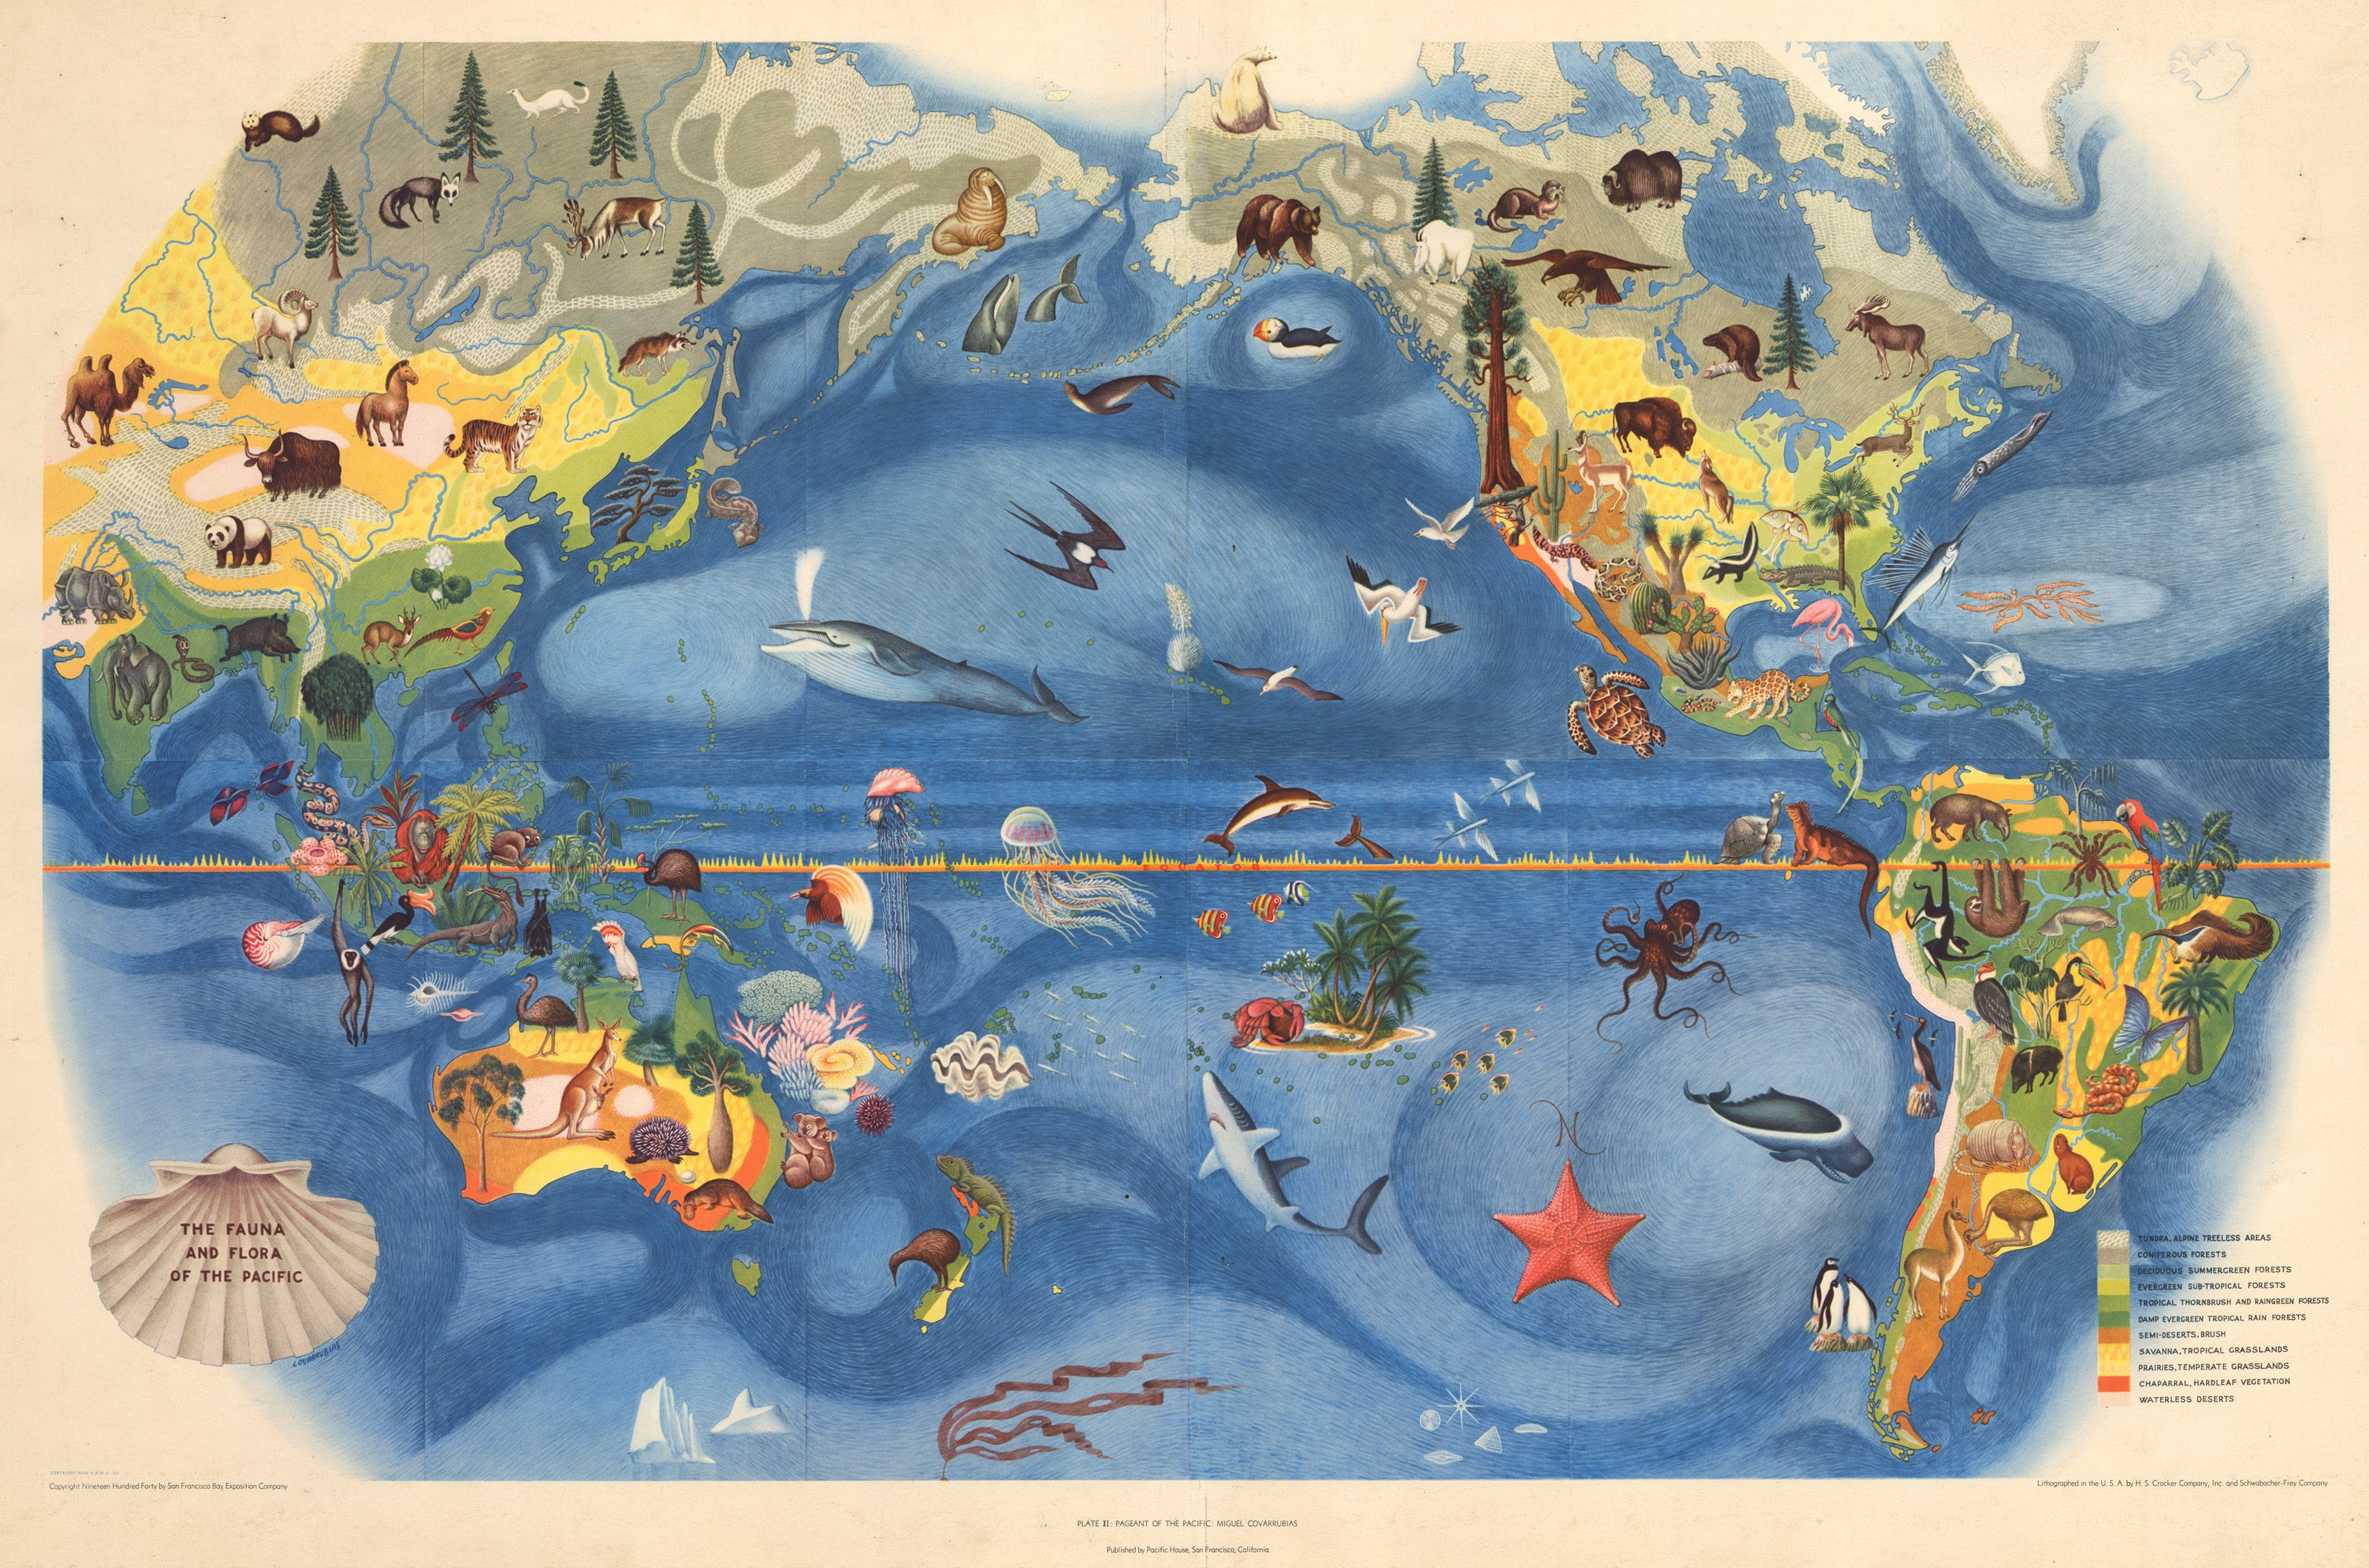 The Fauna and Flora of the Pacific by: Covarrubias 1940 - the ...